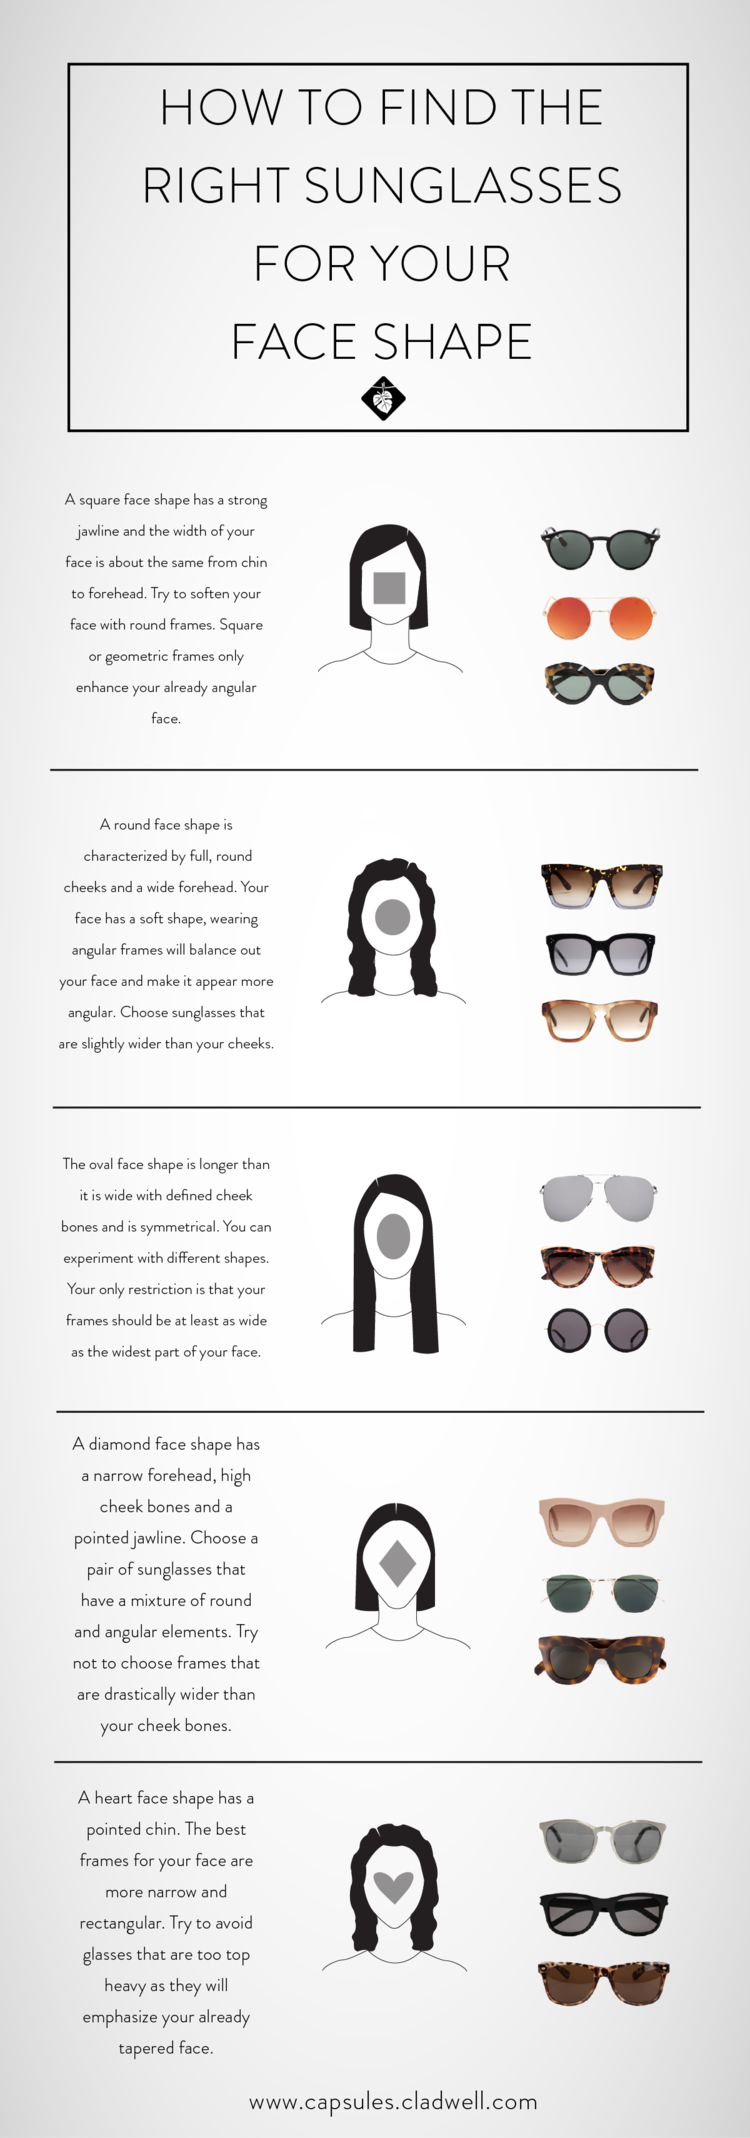 How To Find The Best Sunglasses For Your Face [Women]   Fashion ...